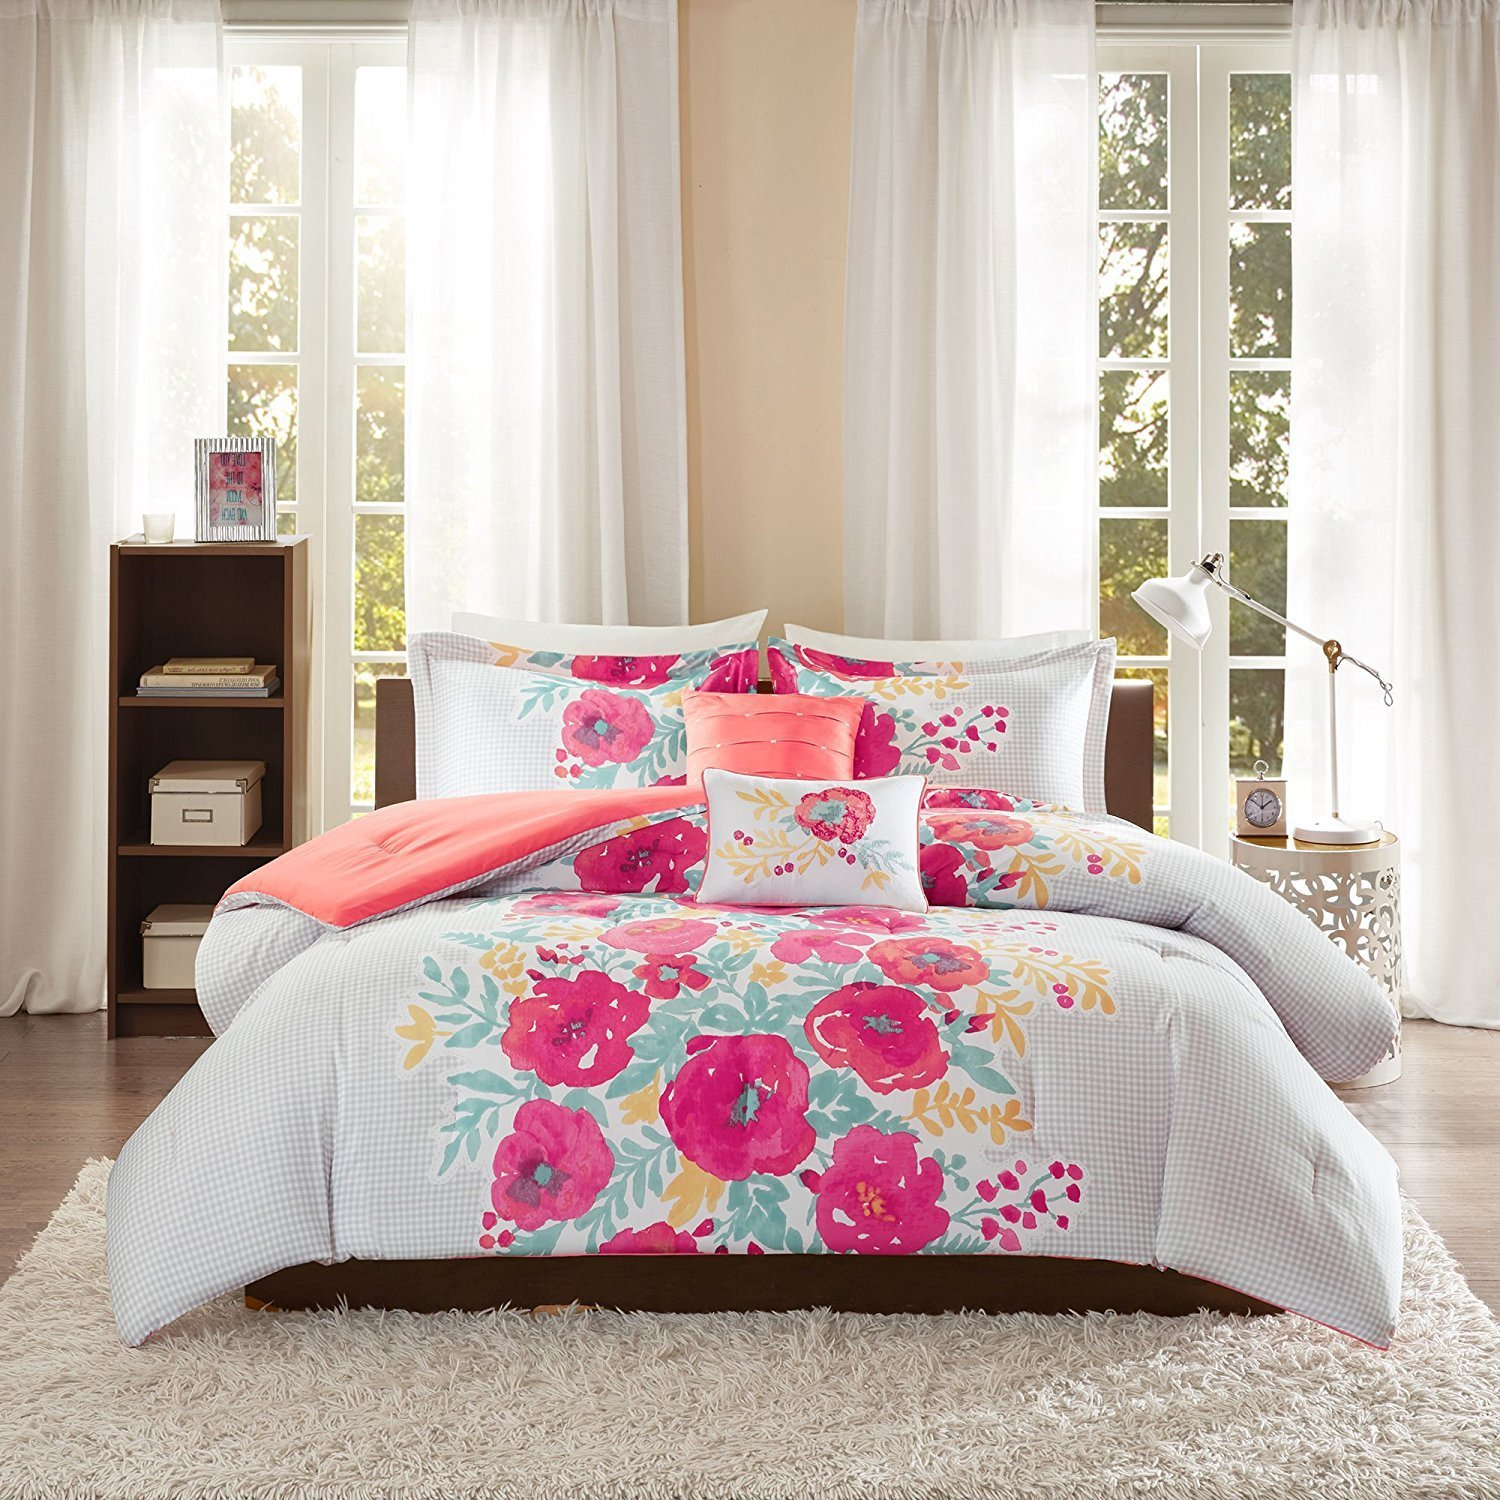 Blue With Pink Flowers Bedding Images Flower Decoration Ideas